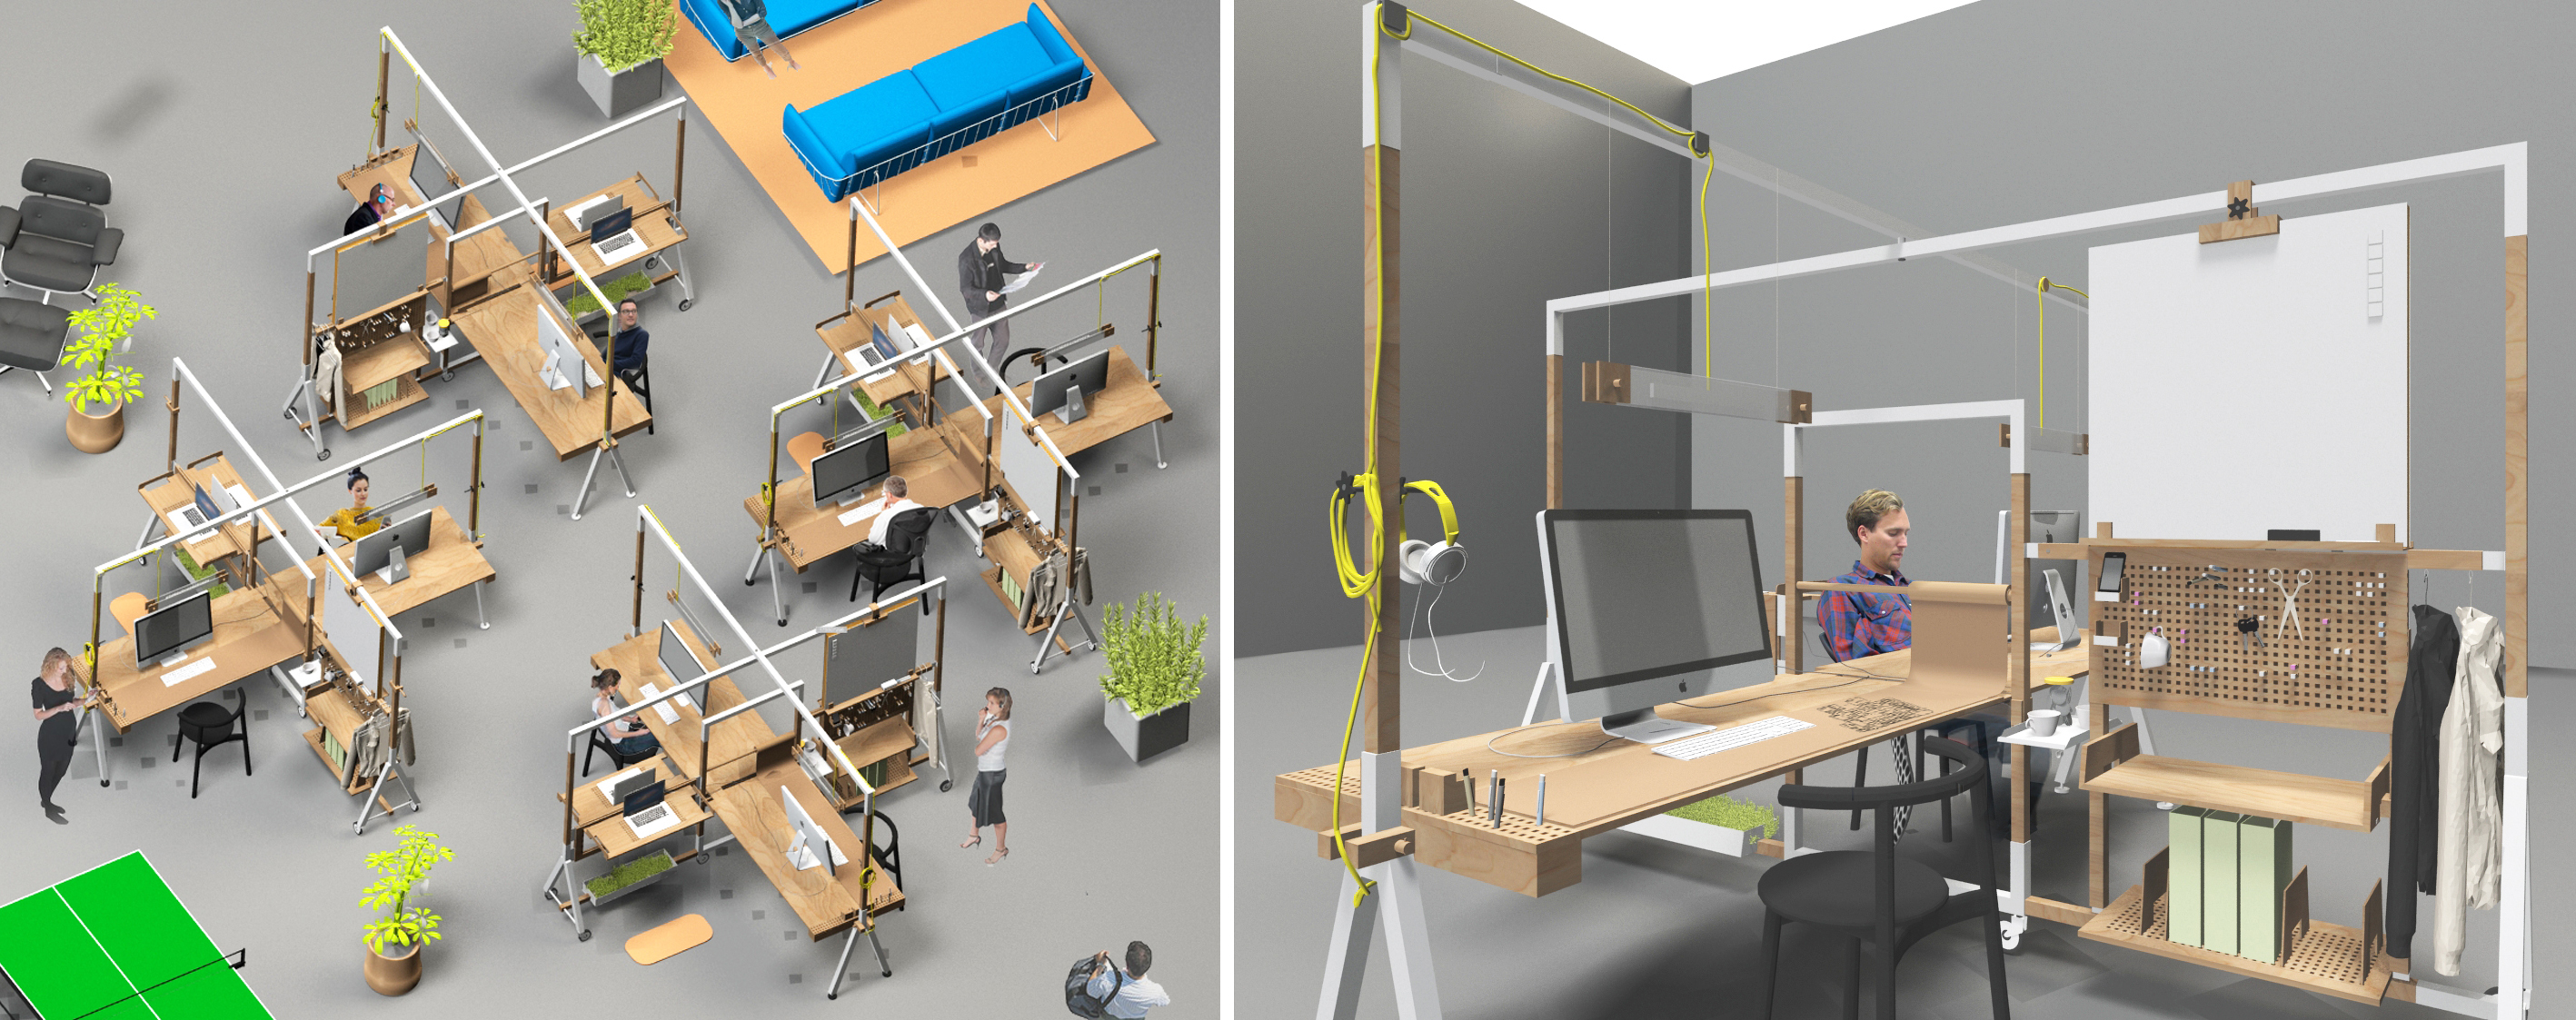 Innovative workstations for creativity